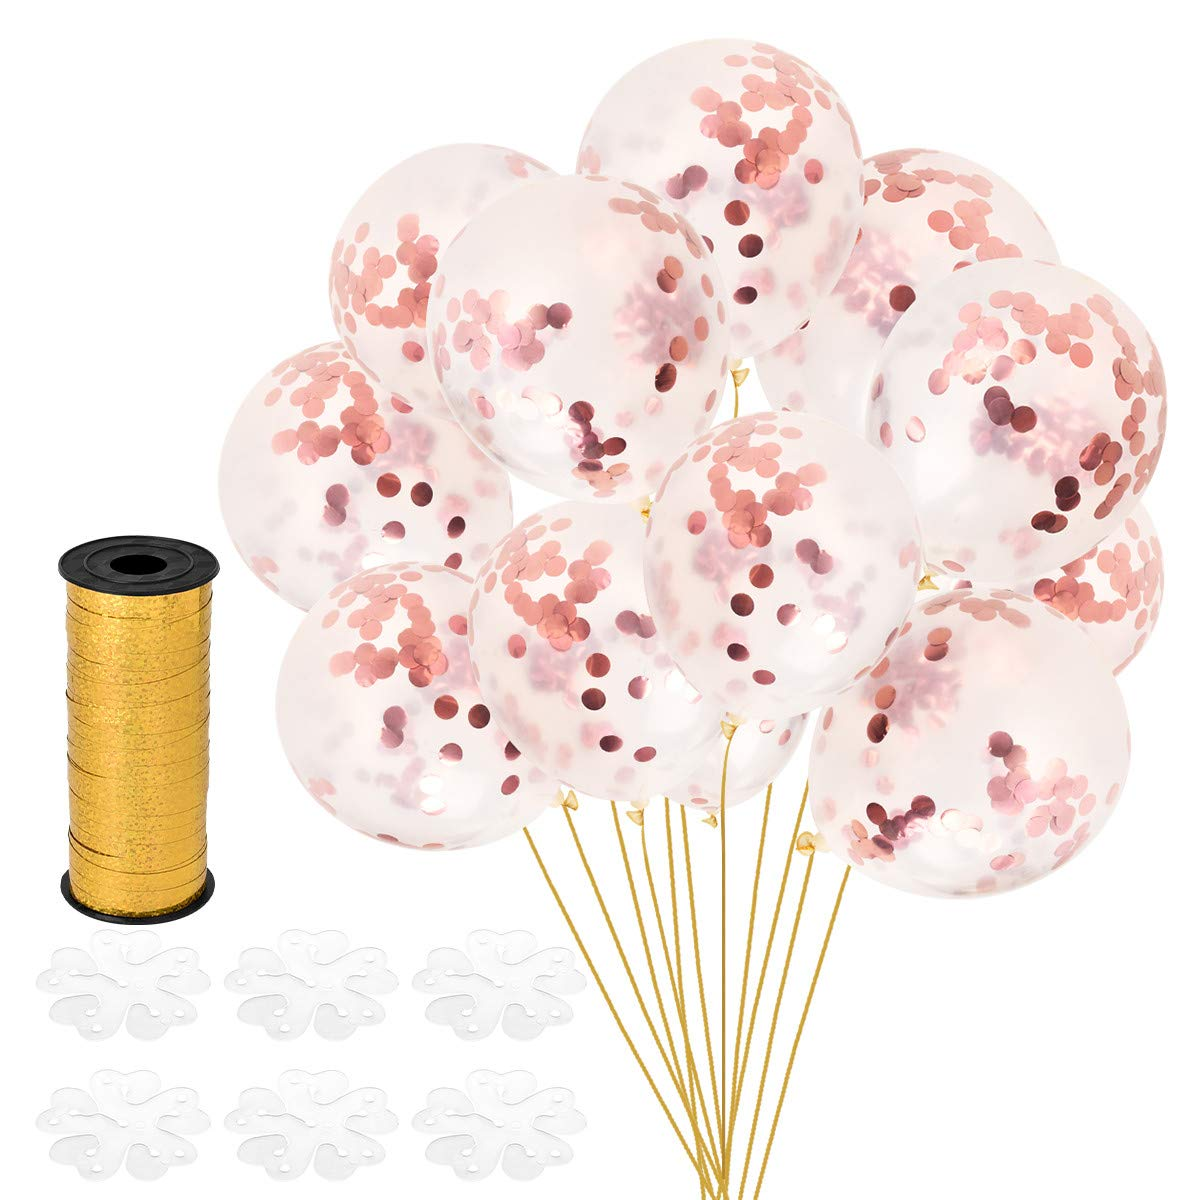 Artoper 30 pcs Rose Gold Confetti Balloons 12 inch - Wedding Party Supplies - Birthday Decorations - Bachelorette Party Clear Latex Balloons - Gold Ribbon - Prefilled Confetti Do (30 Pack - Rose Gold)